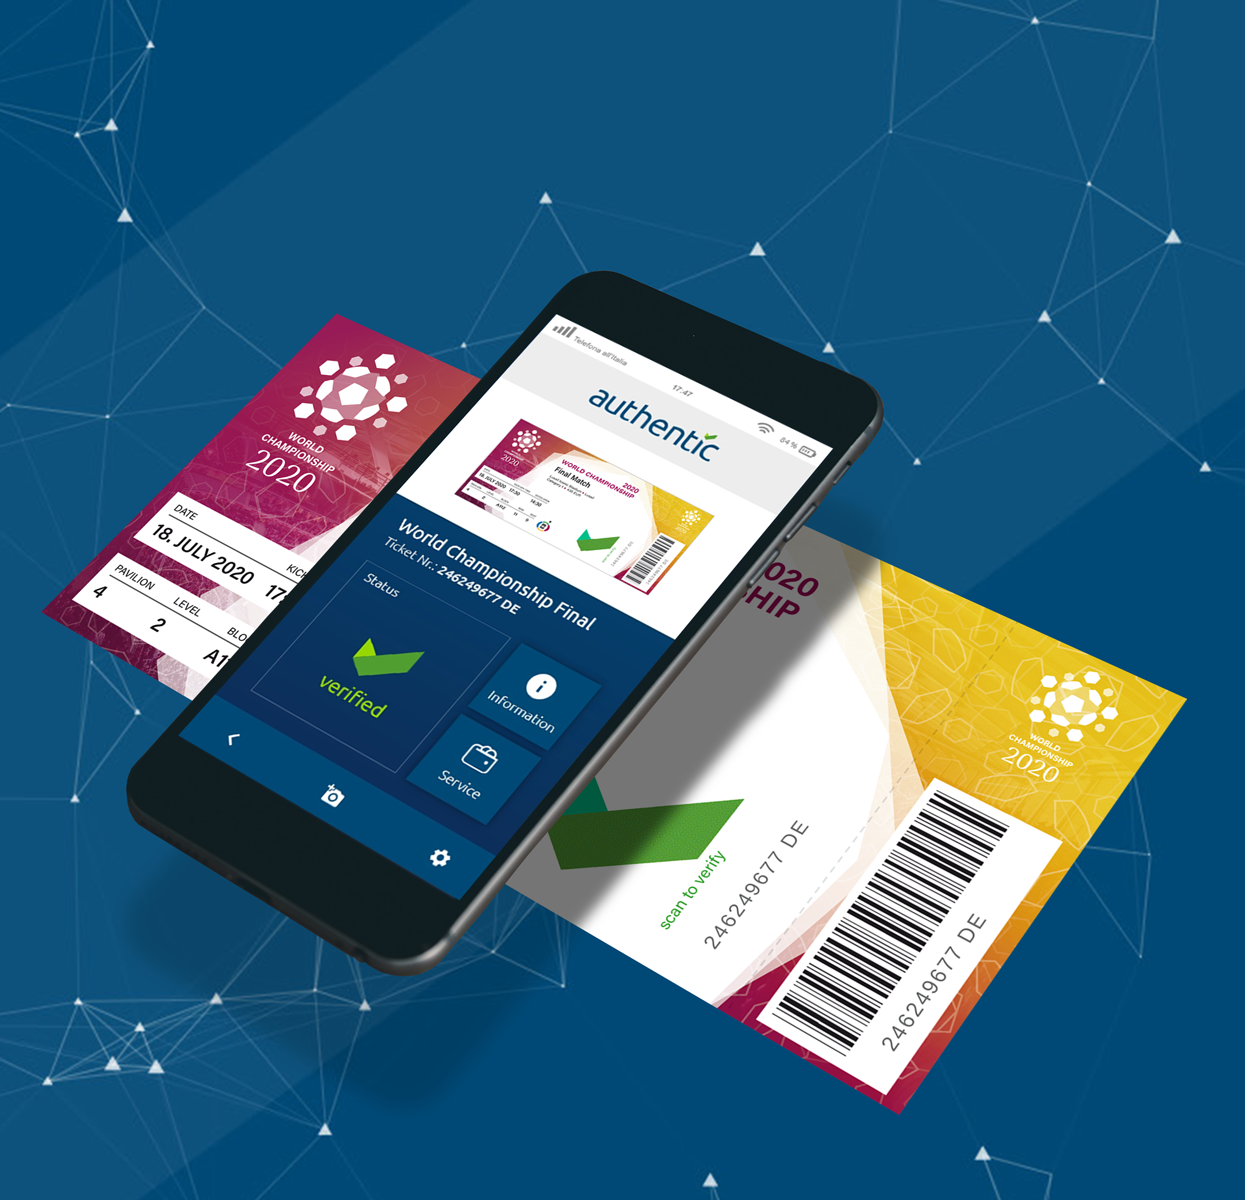 Use Case: Verifying Tickets with our authentic.Key and add additional services